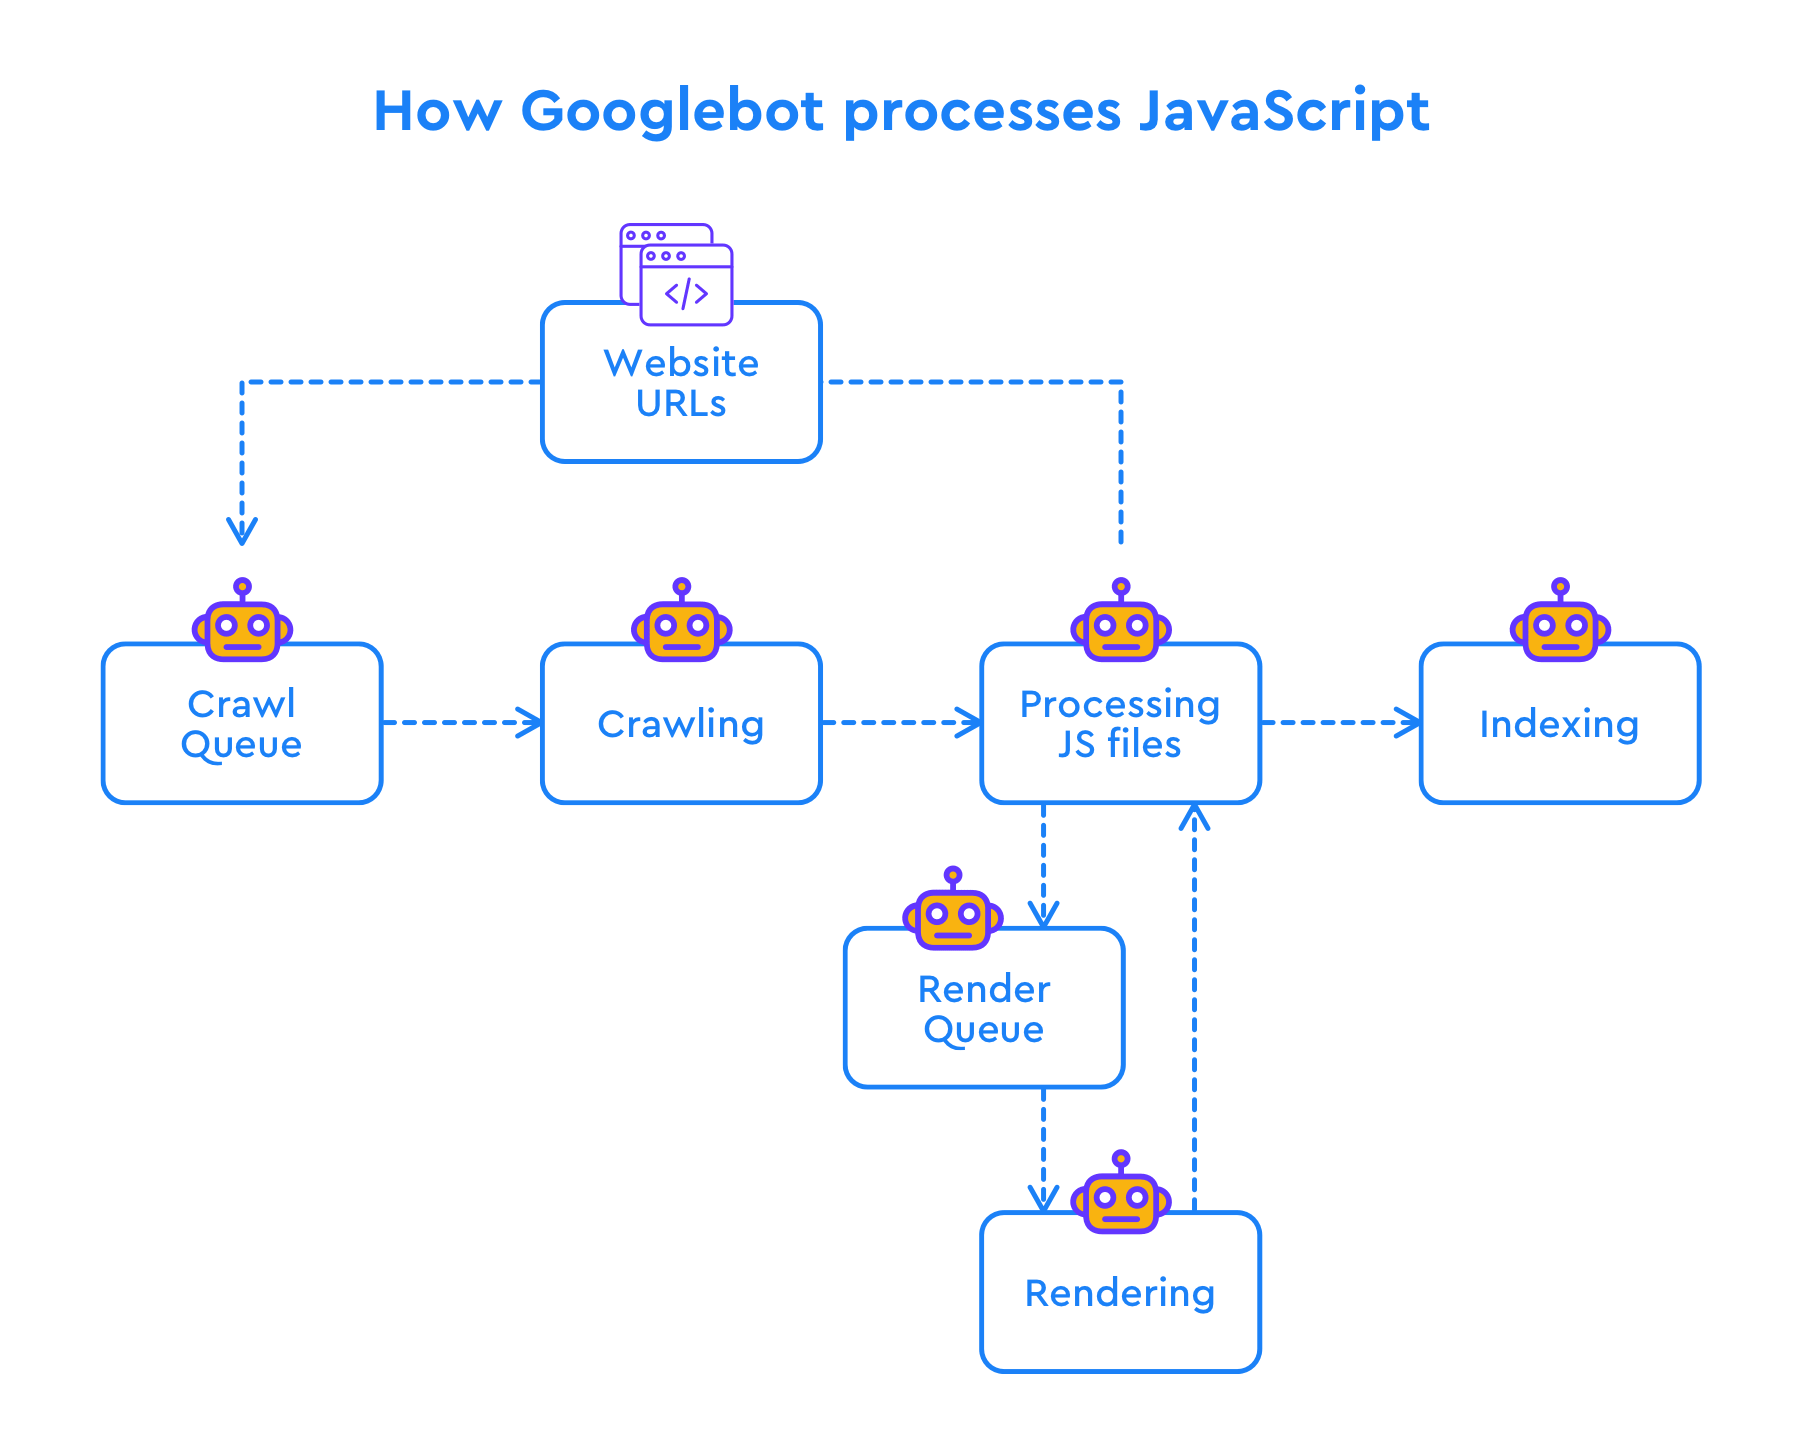 How Googlebot processes JavaScript